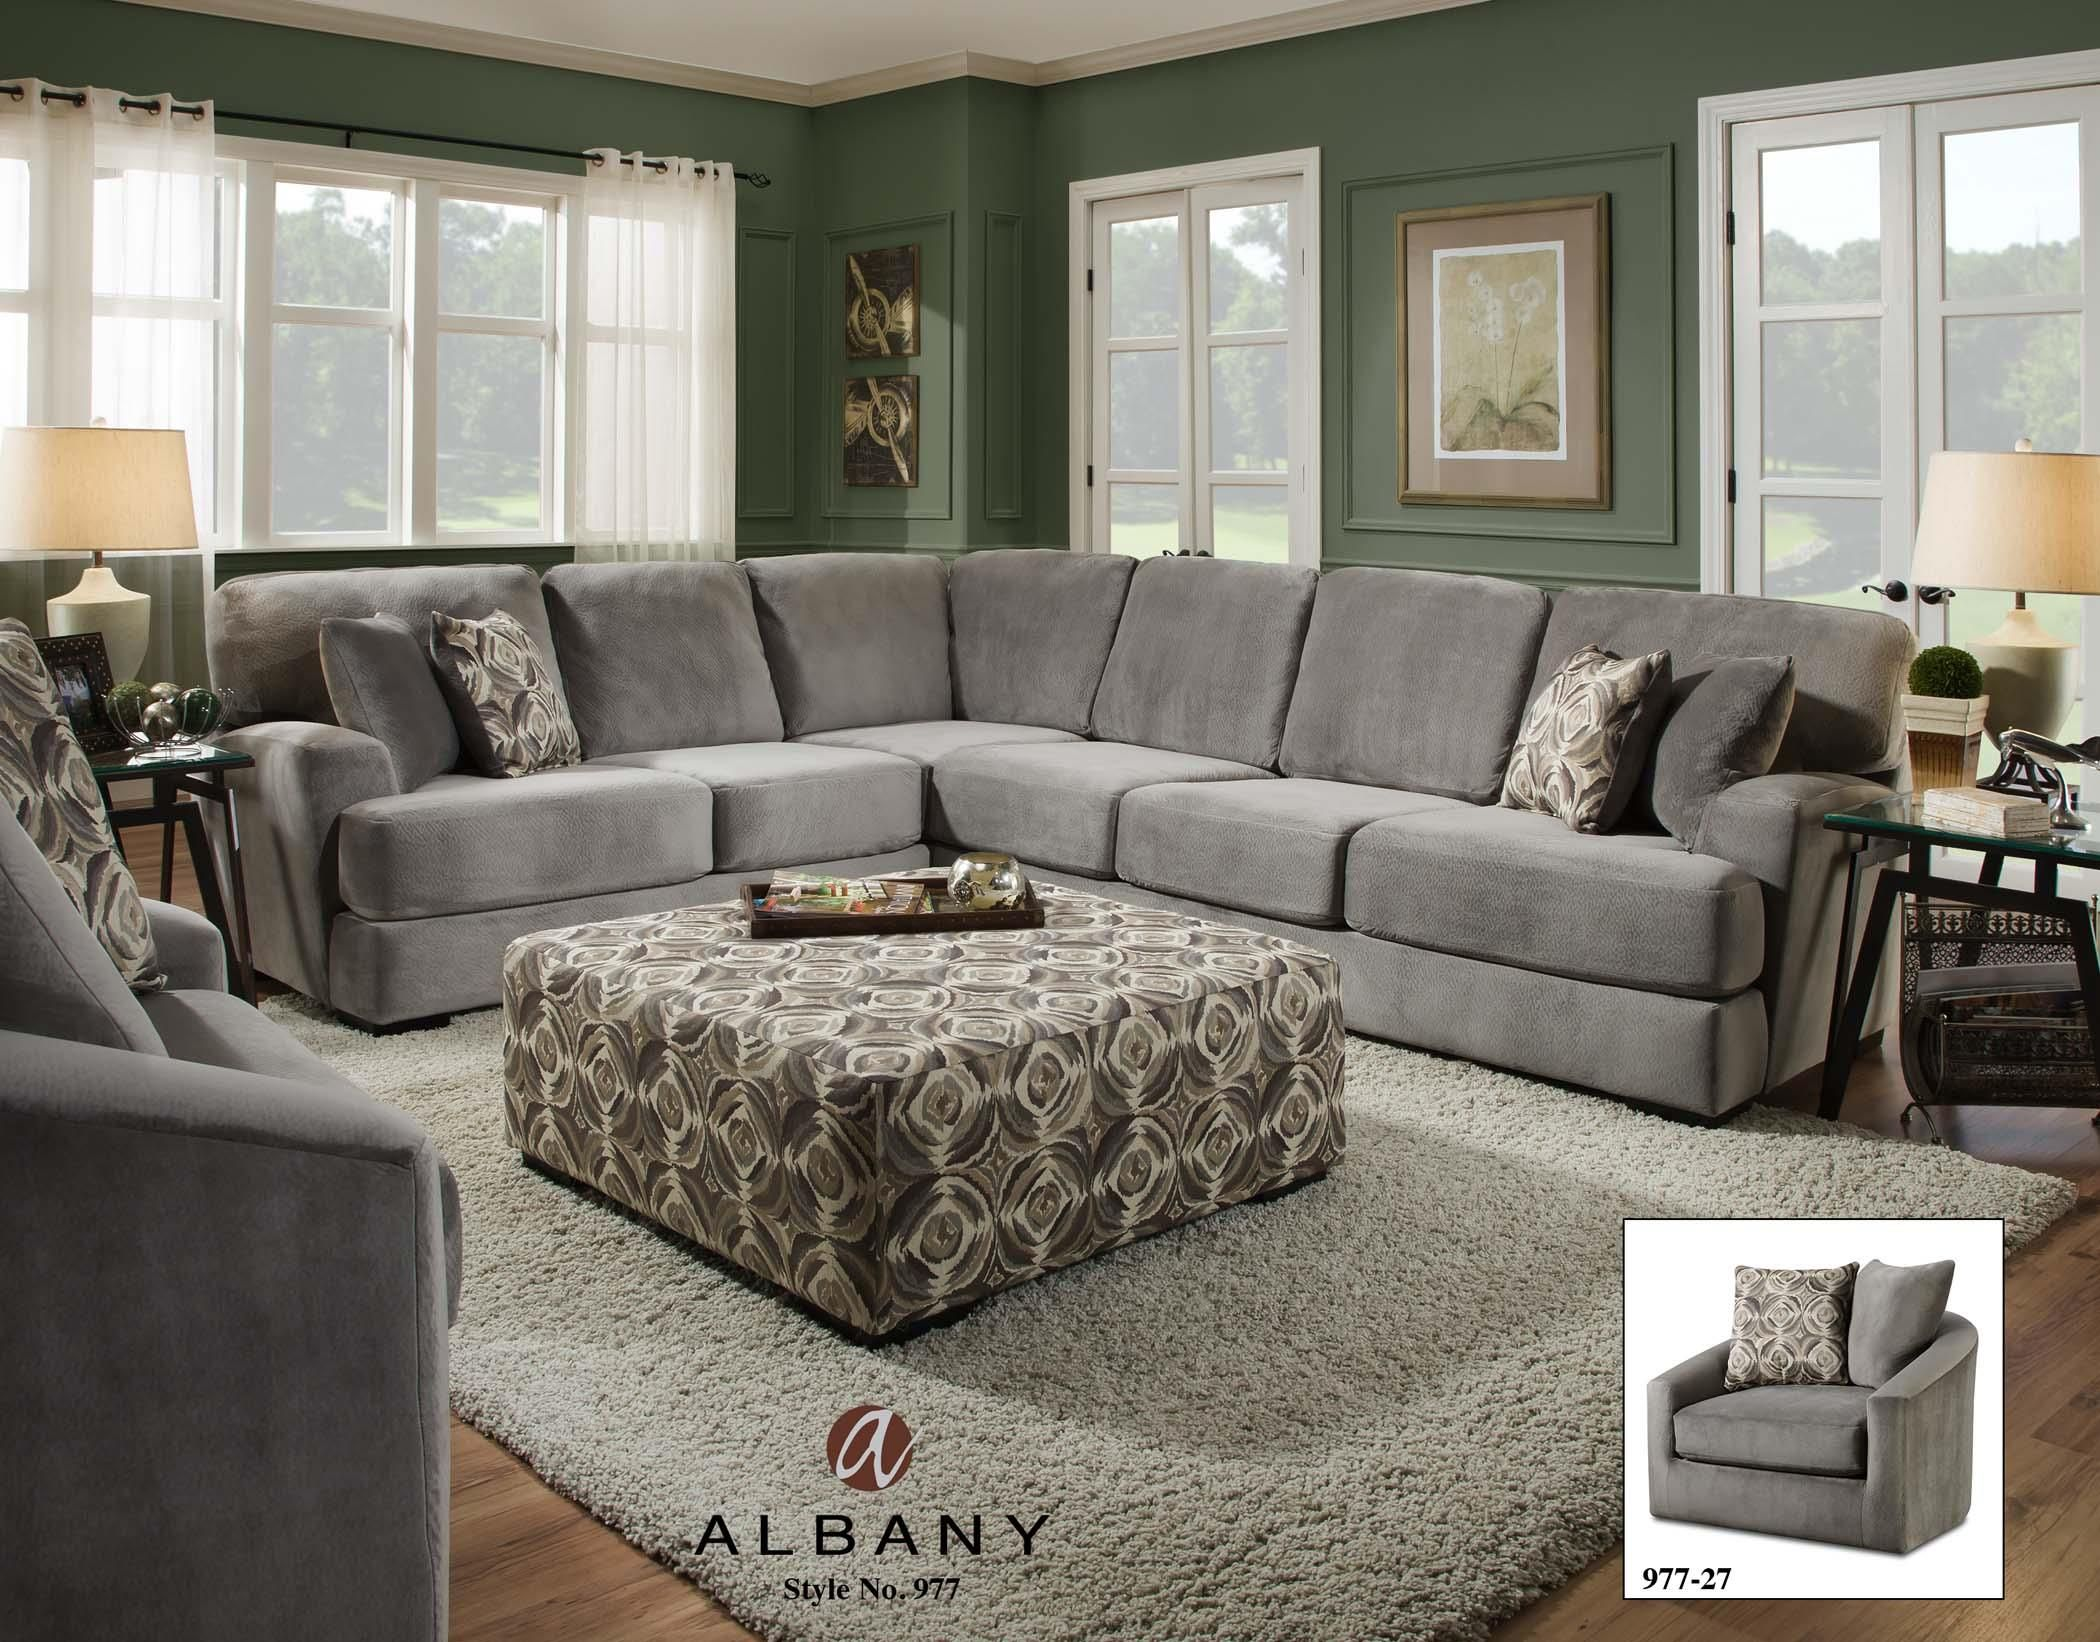 The Ultra Comfortable Serre Suede Sectional Sofa Features Soft Padded Upholstery With Sleek Contoured Arms Perfect For Any Contemporary Living Room